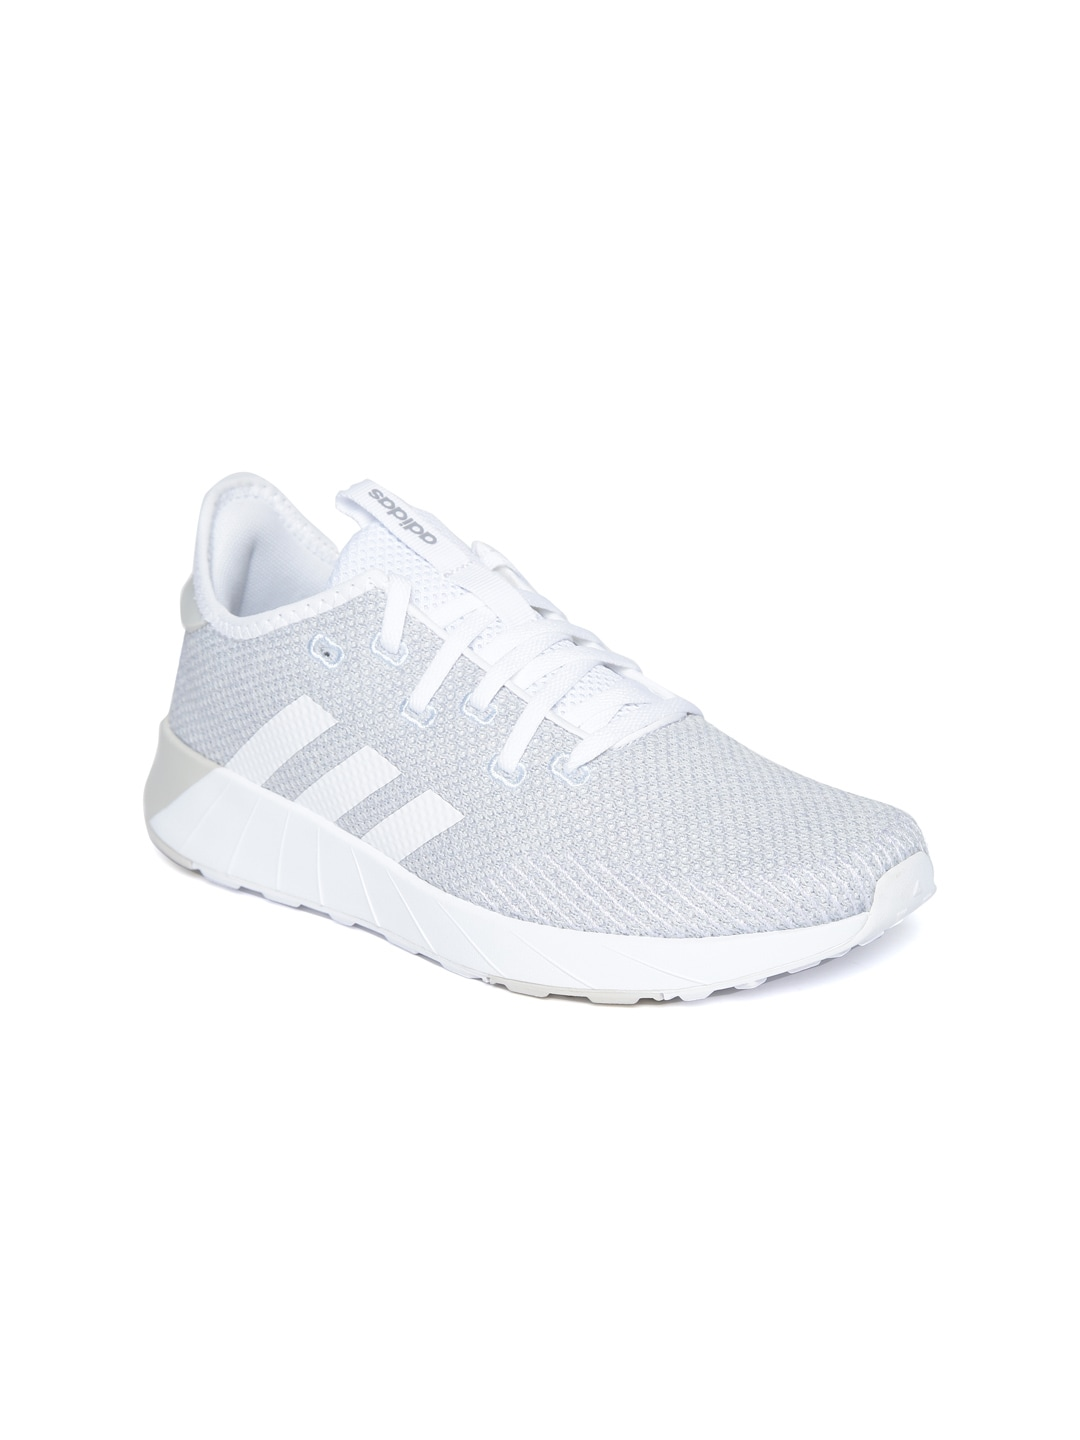 2fe2ed320ca3 Adidas Shoes - Buy Adidas Shoes for Men   Women Online - Myntra